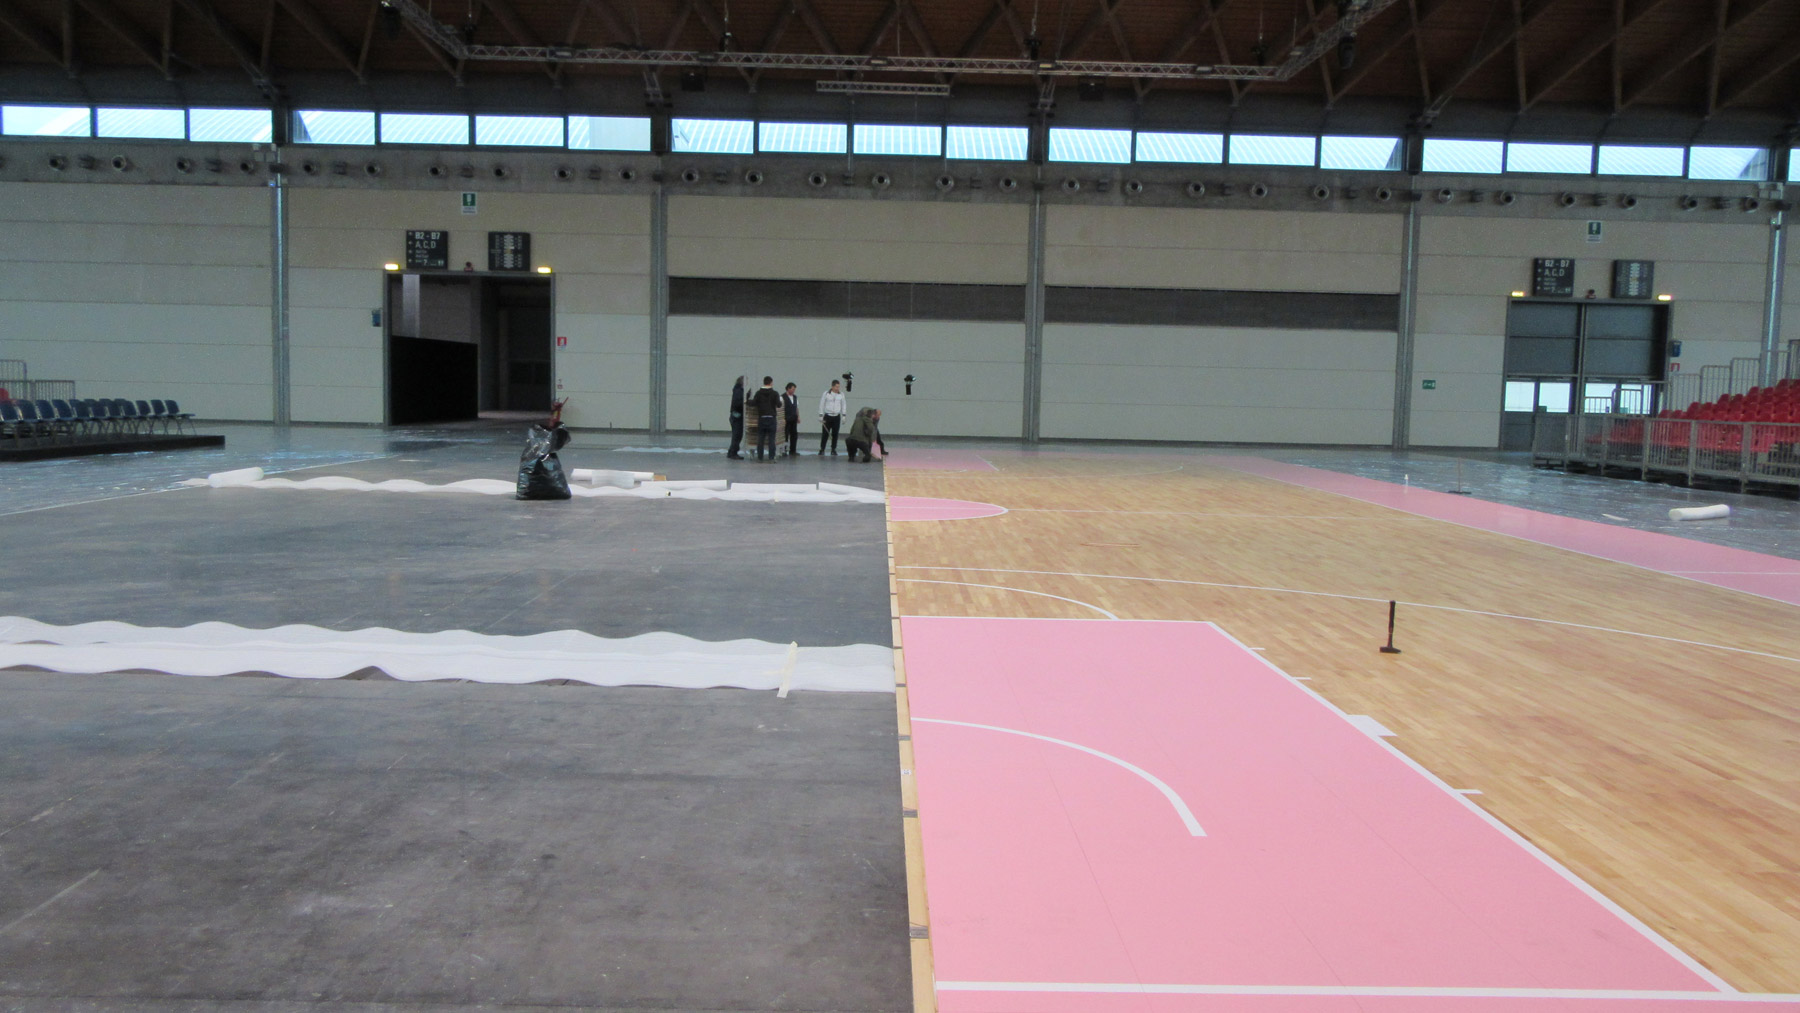 Portable sports floor Dalla Riva pink parquet basketball 2016